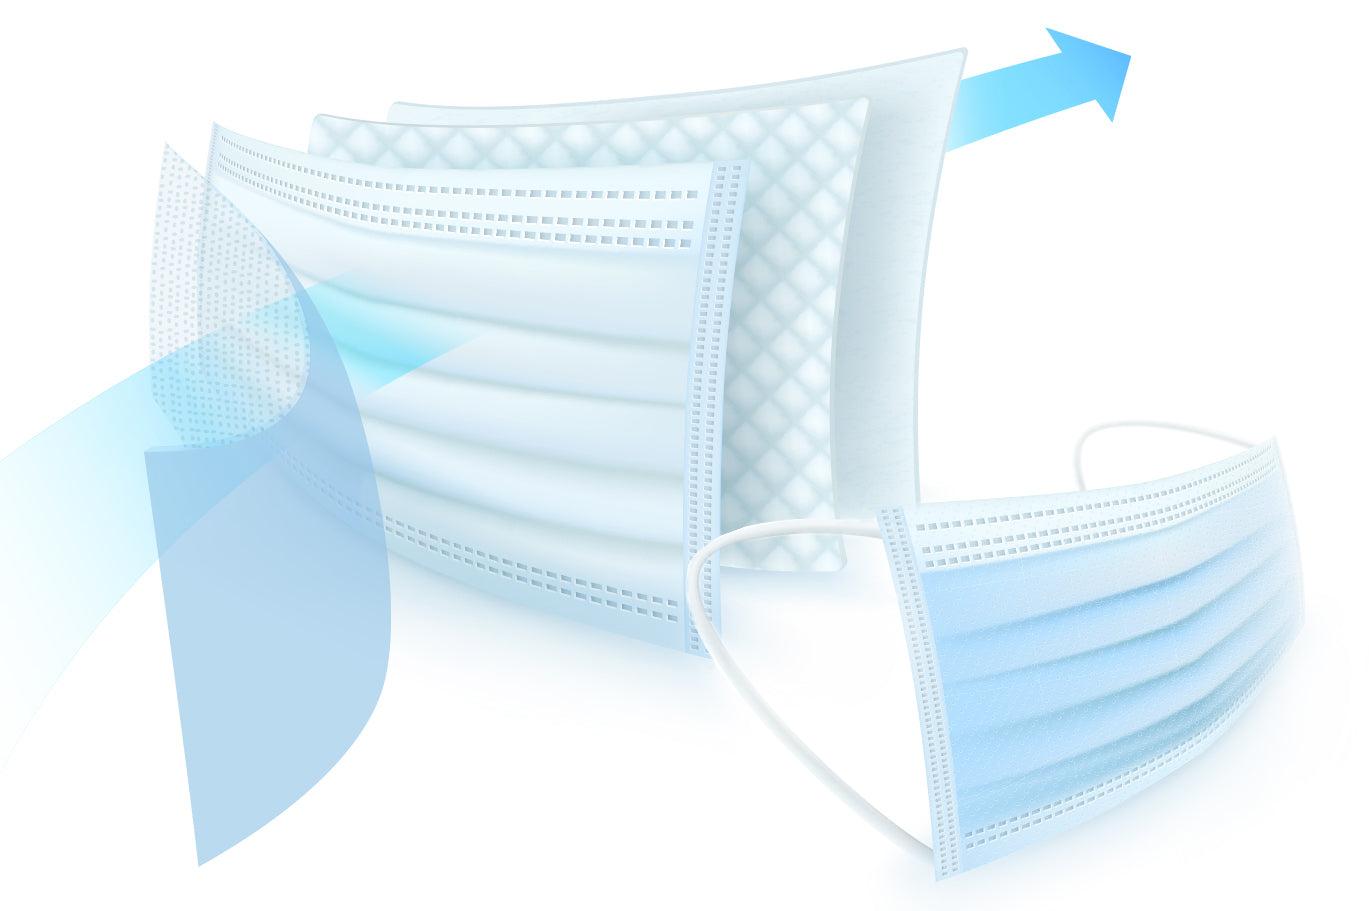 Computer generated image of mask layers and a full mask isolated on white background